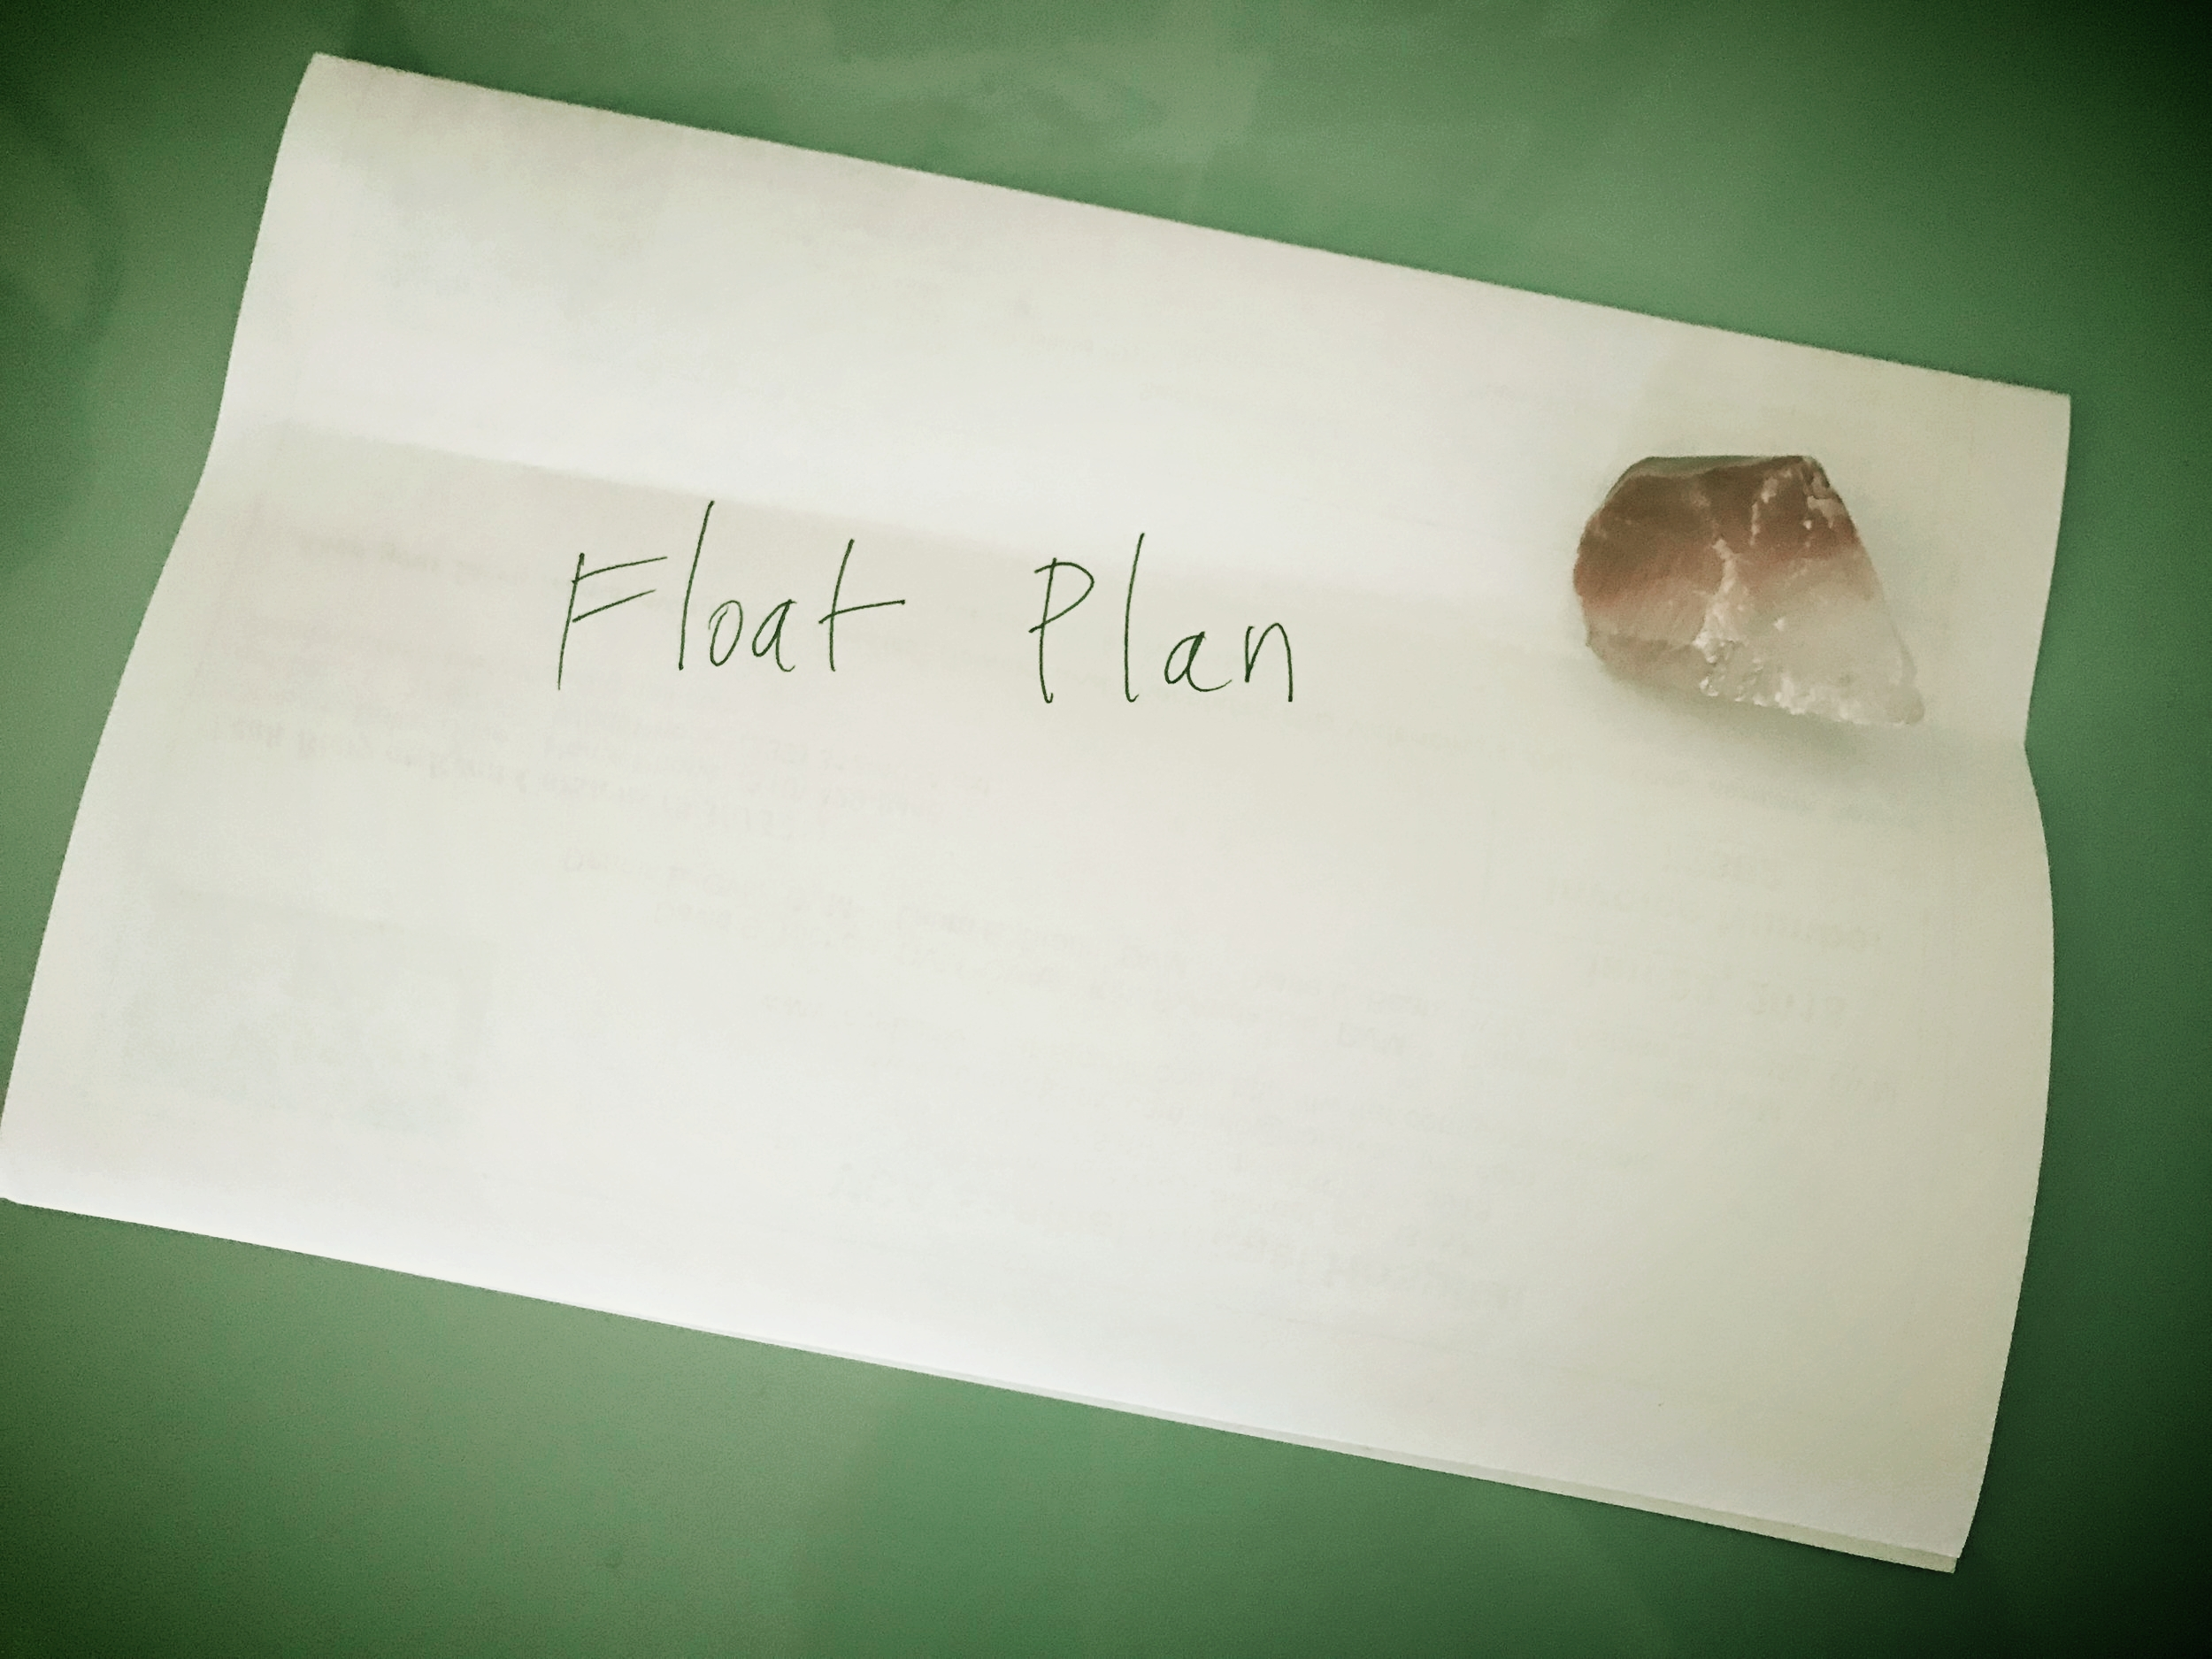 A paddling float plan can take the form of a text message, a standard form, a note on a piece of paper, or something else entirely, as long as it includes the necessary information.